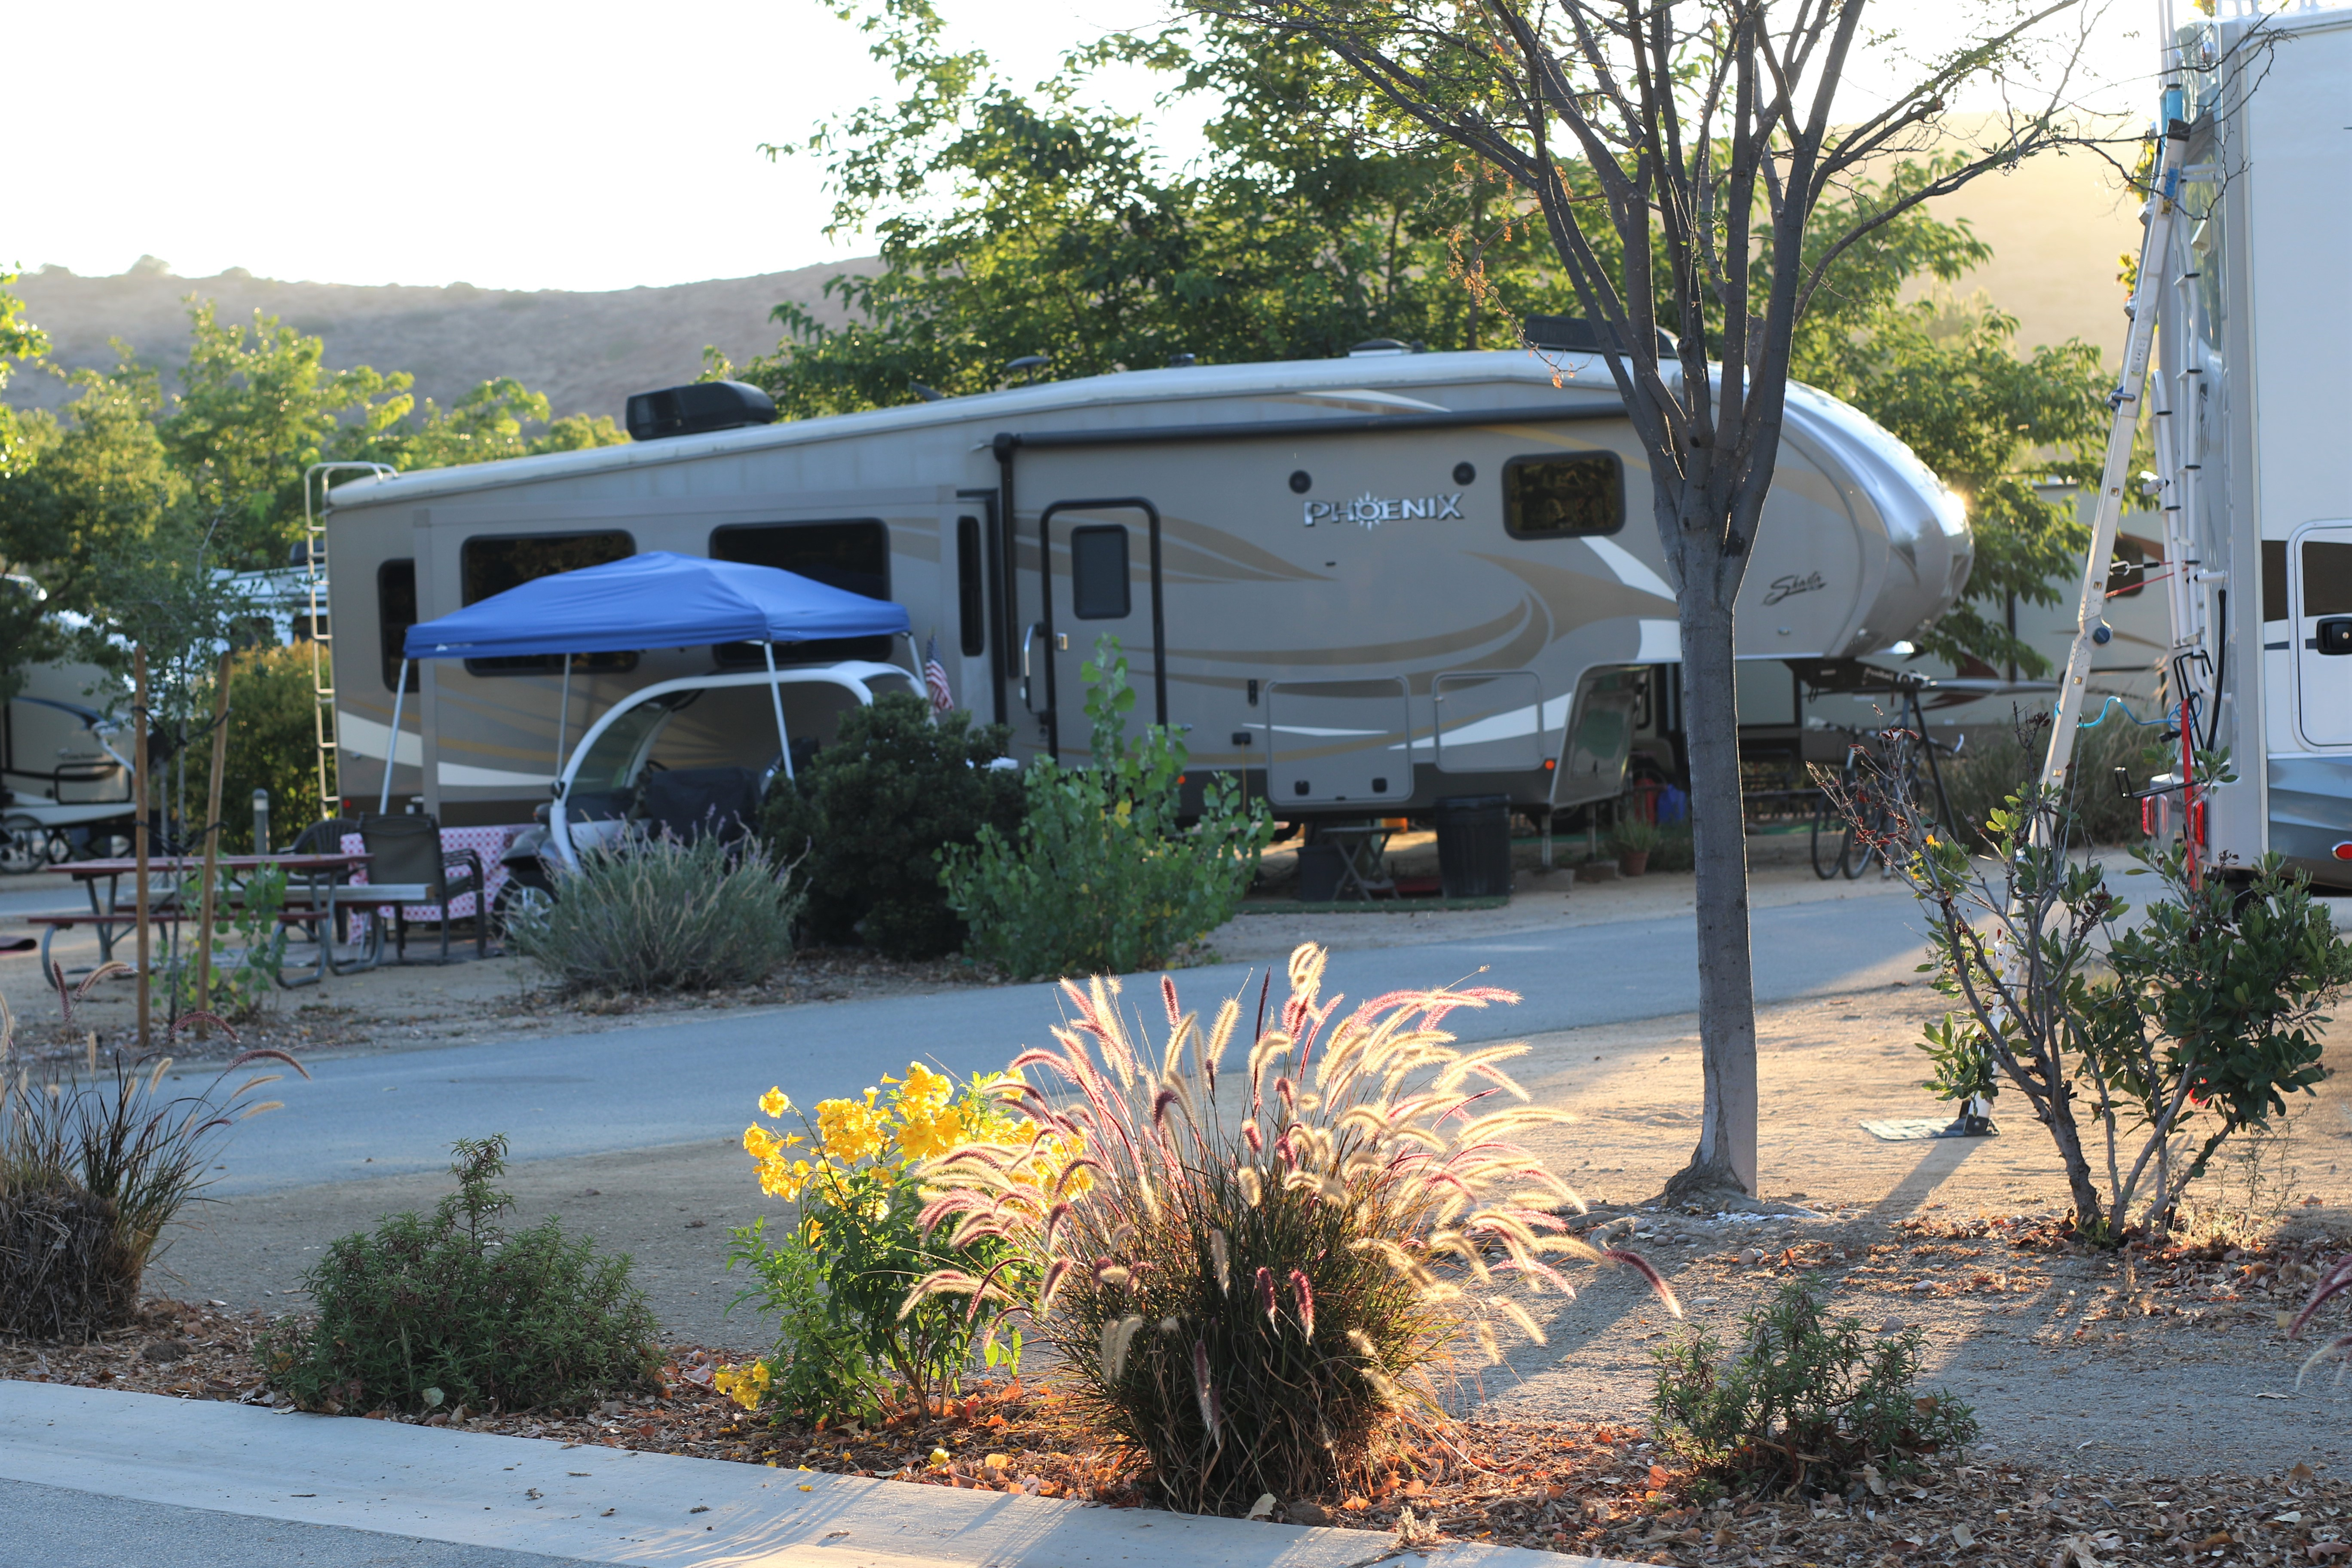 Beautifully landscaped sites in the Campground.